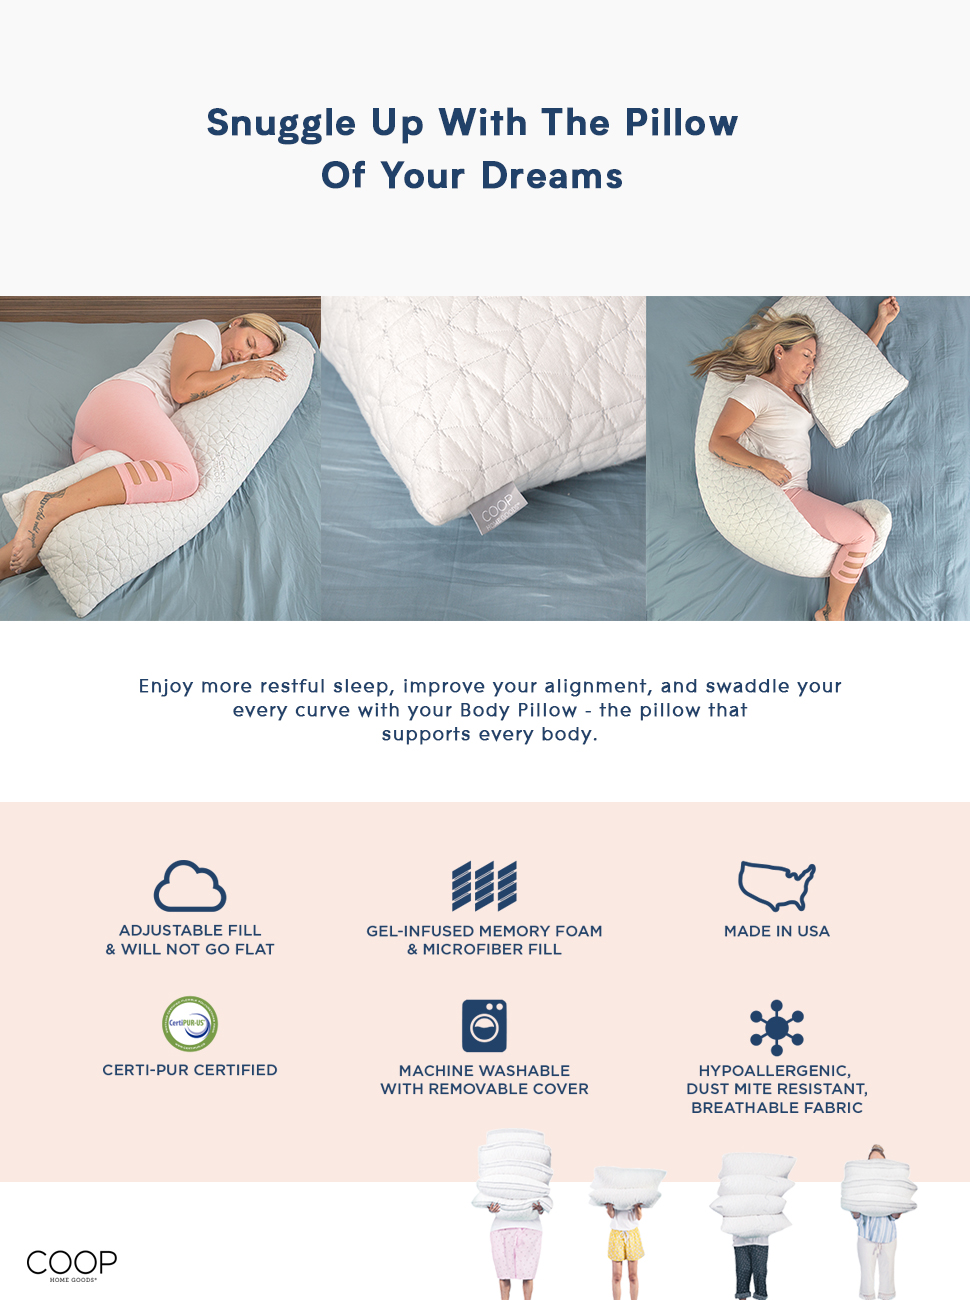 shredded adjustable of foam hypo ultra s picture pillow allergenic soft p with memory proprietary fully home cylen